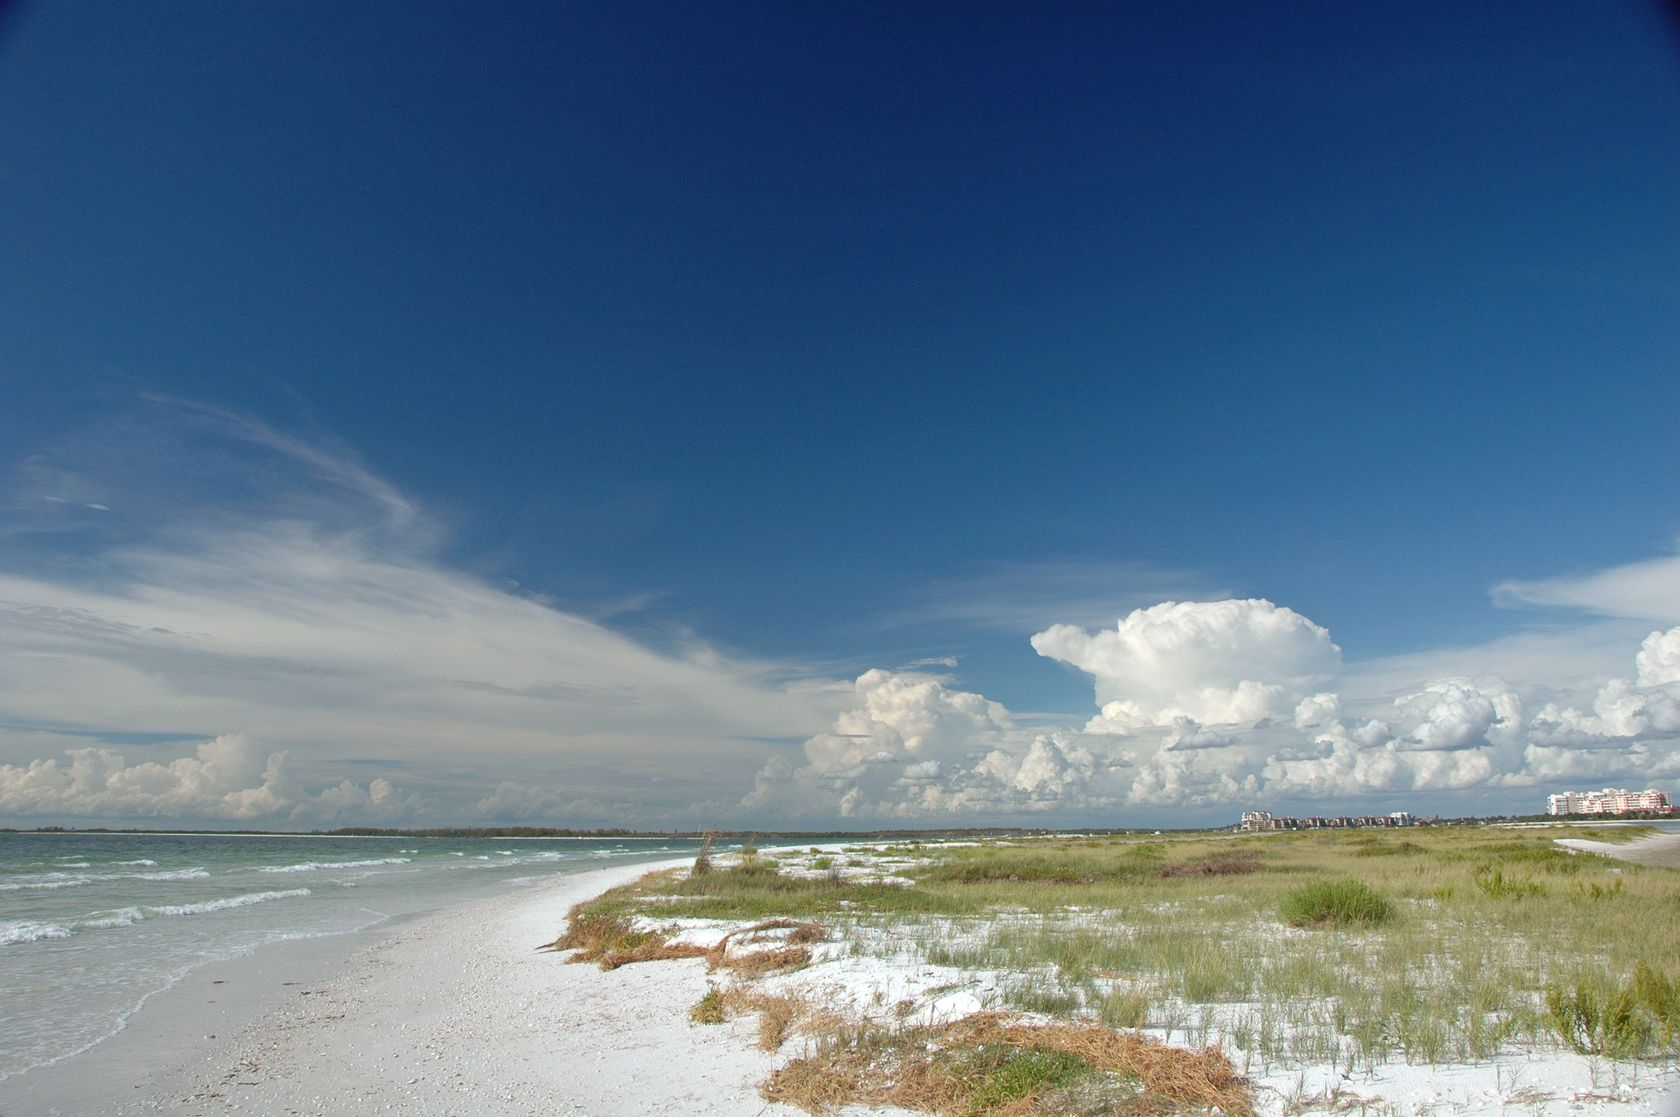 tiger tail beach at marco island, florida